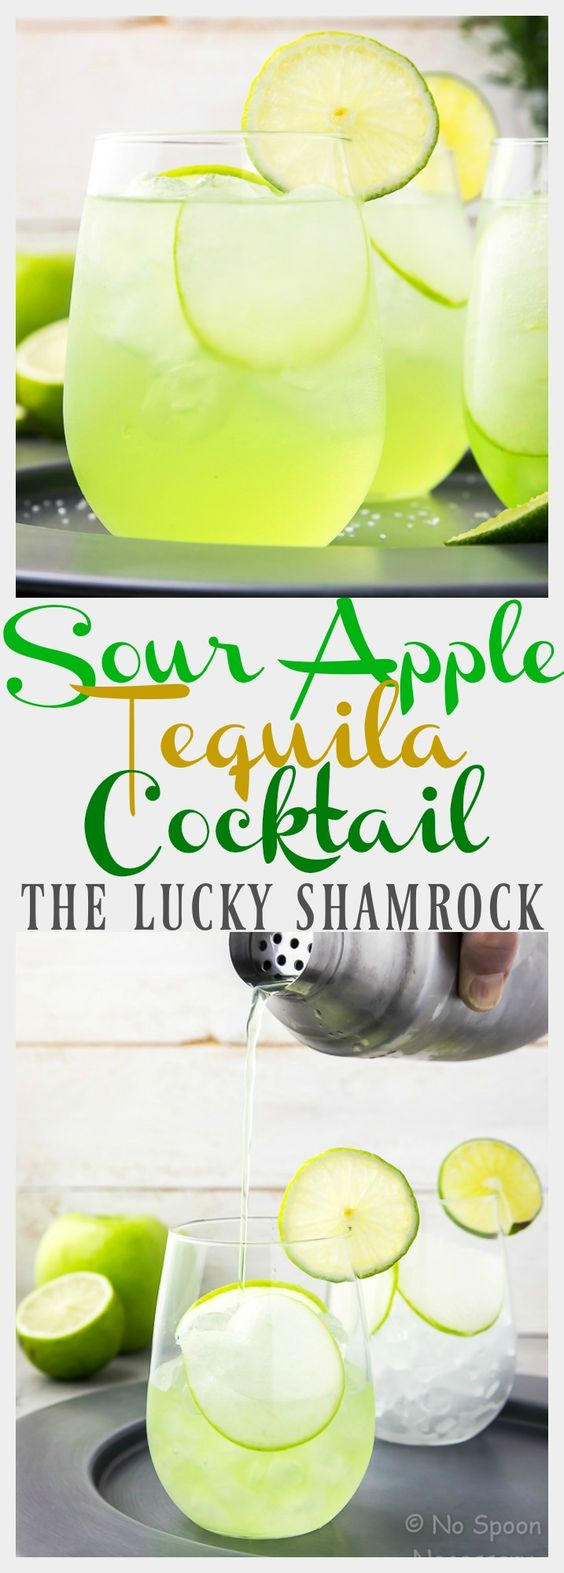 Sour Apple Tequila Cocktail - The Lucky Shamrock